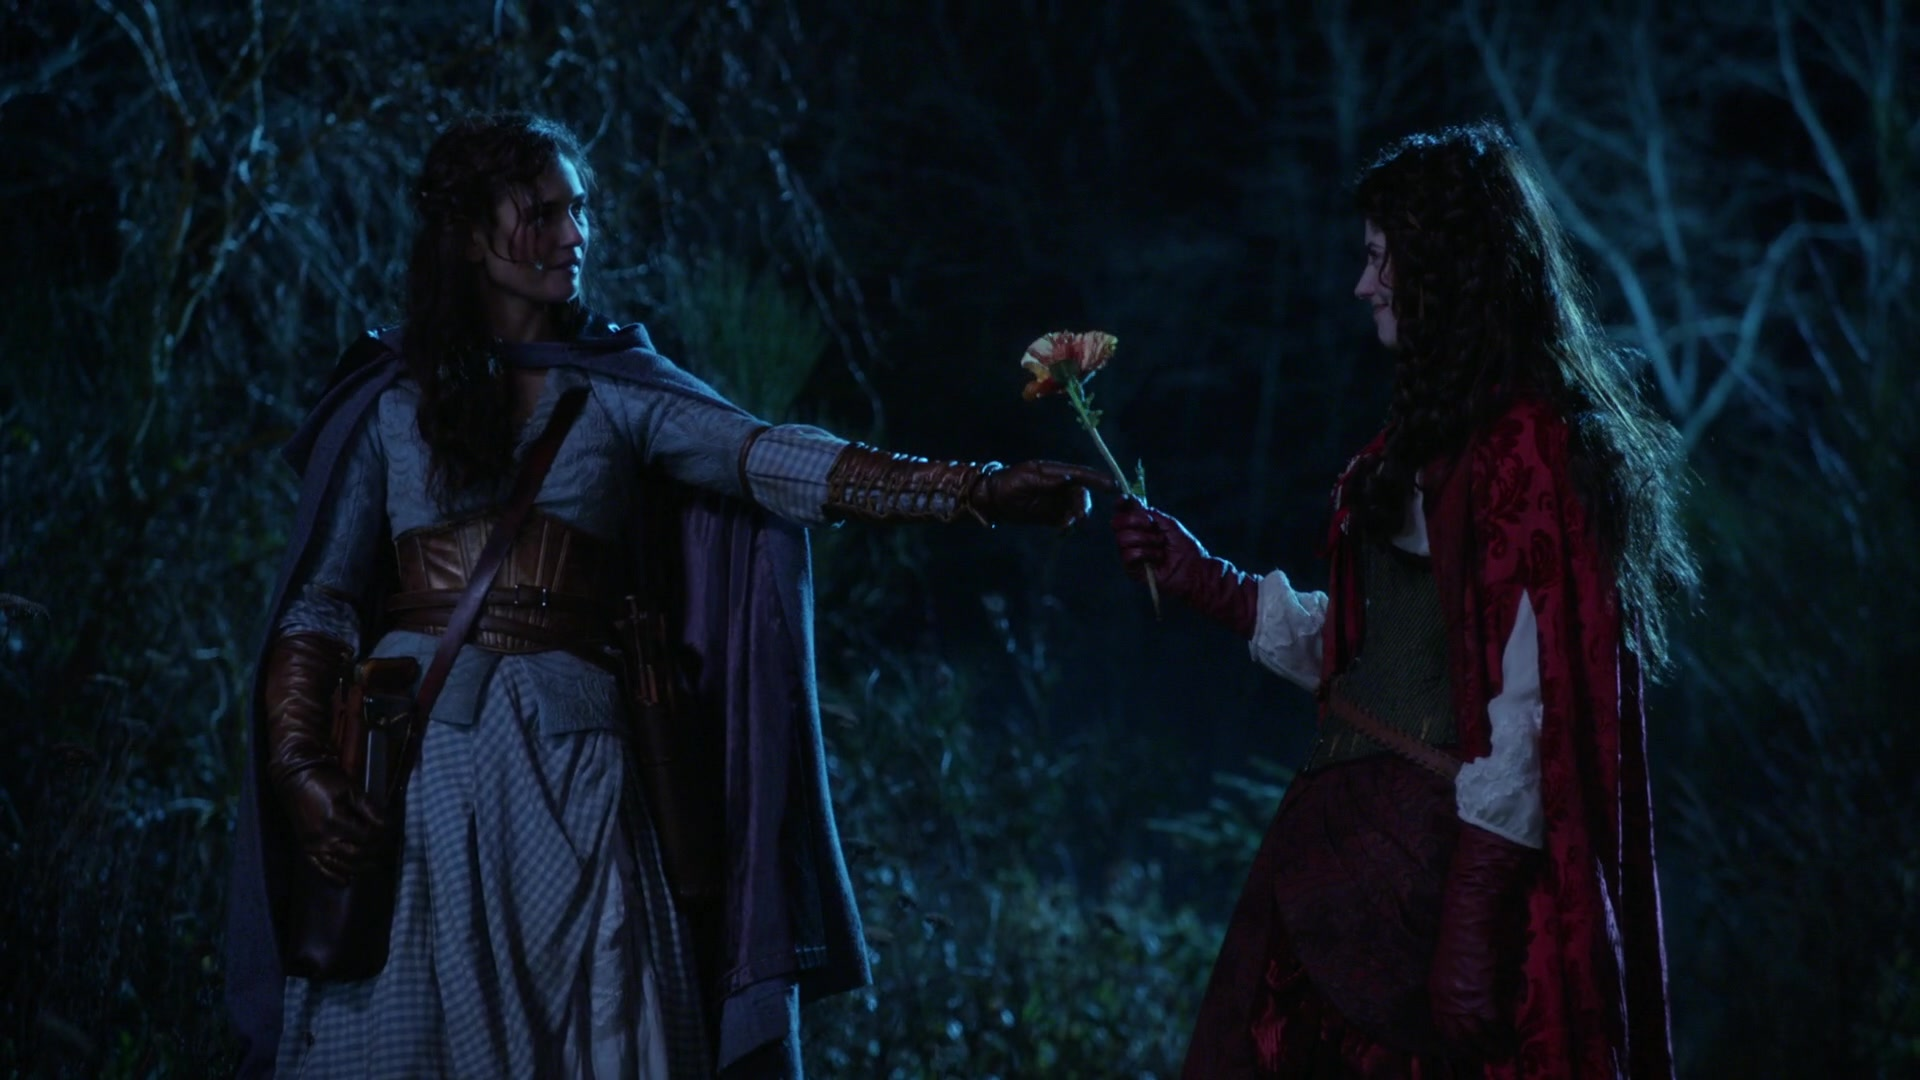 Ruby Slippers (Once Upon a Time)